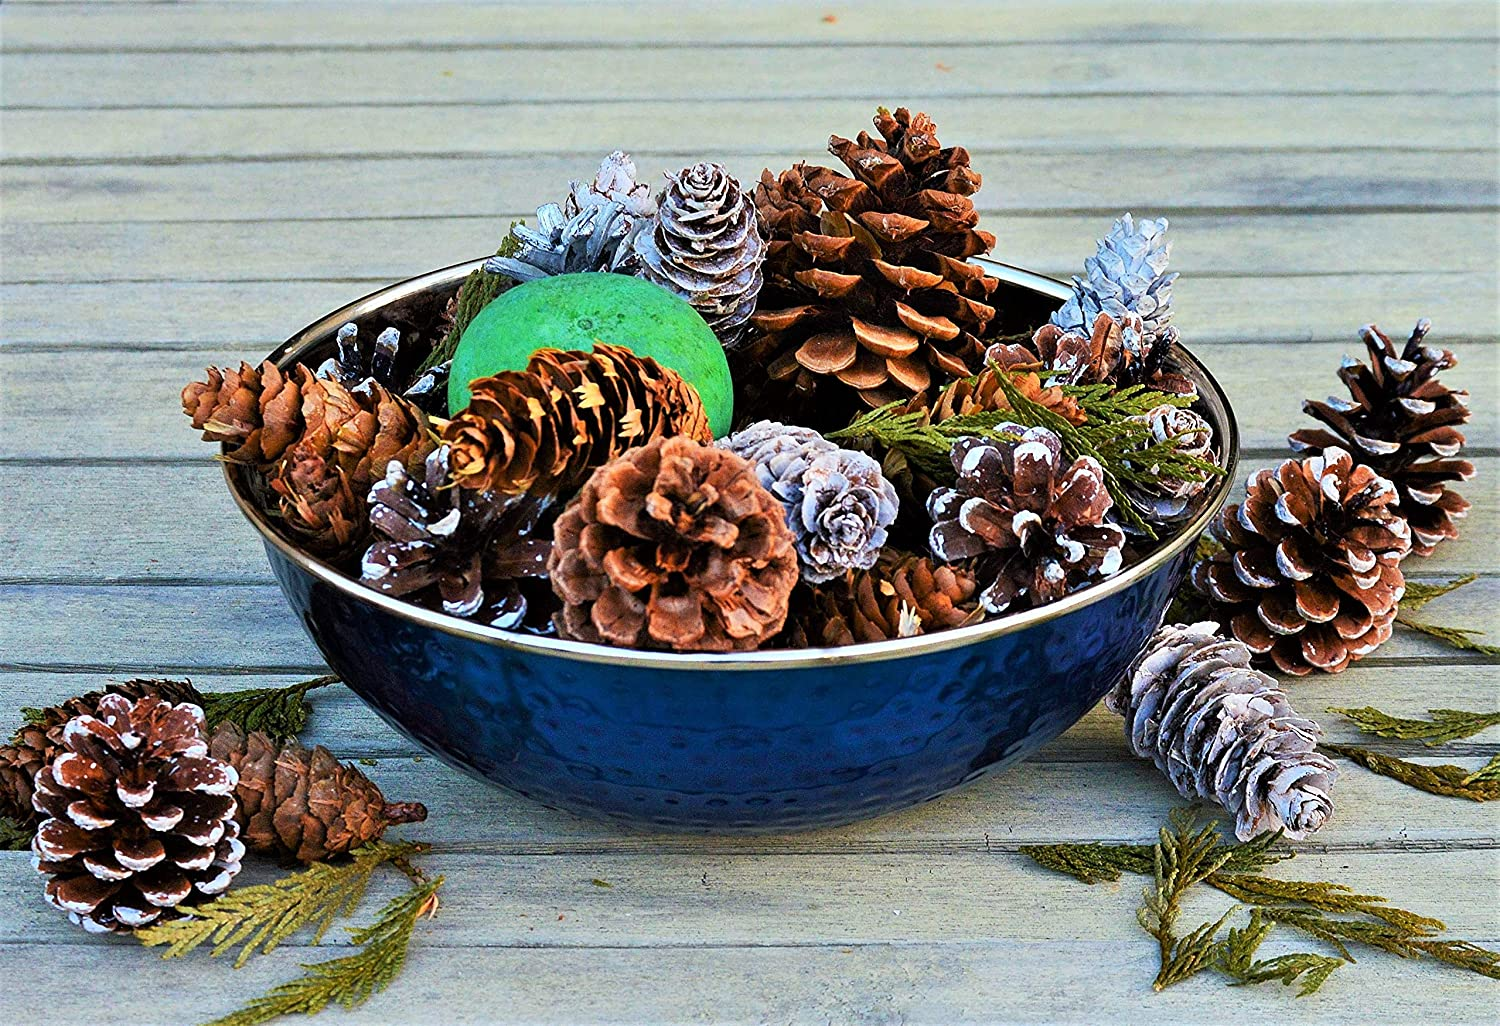 Manu Home Holiday Pine Potpourri in a Beautiful Stainless Steel Blue Bowl ~A Clean Scent of Fresh Forest Pine Potpourri with Fresh Evergreen, Juniper and Mint ~ Ready to Display or Gift~ Made in USA